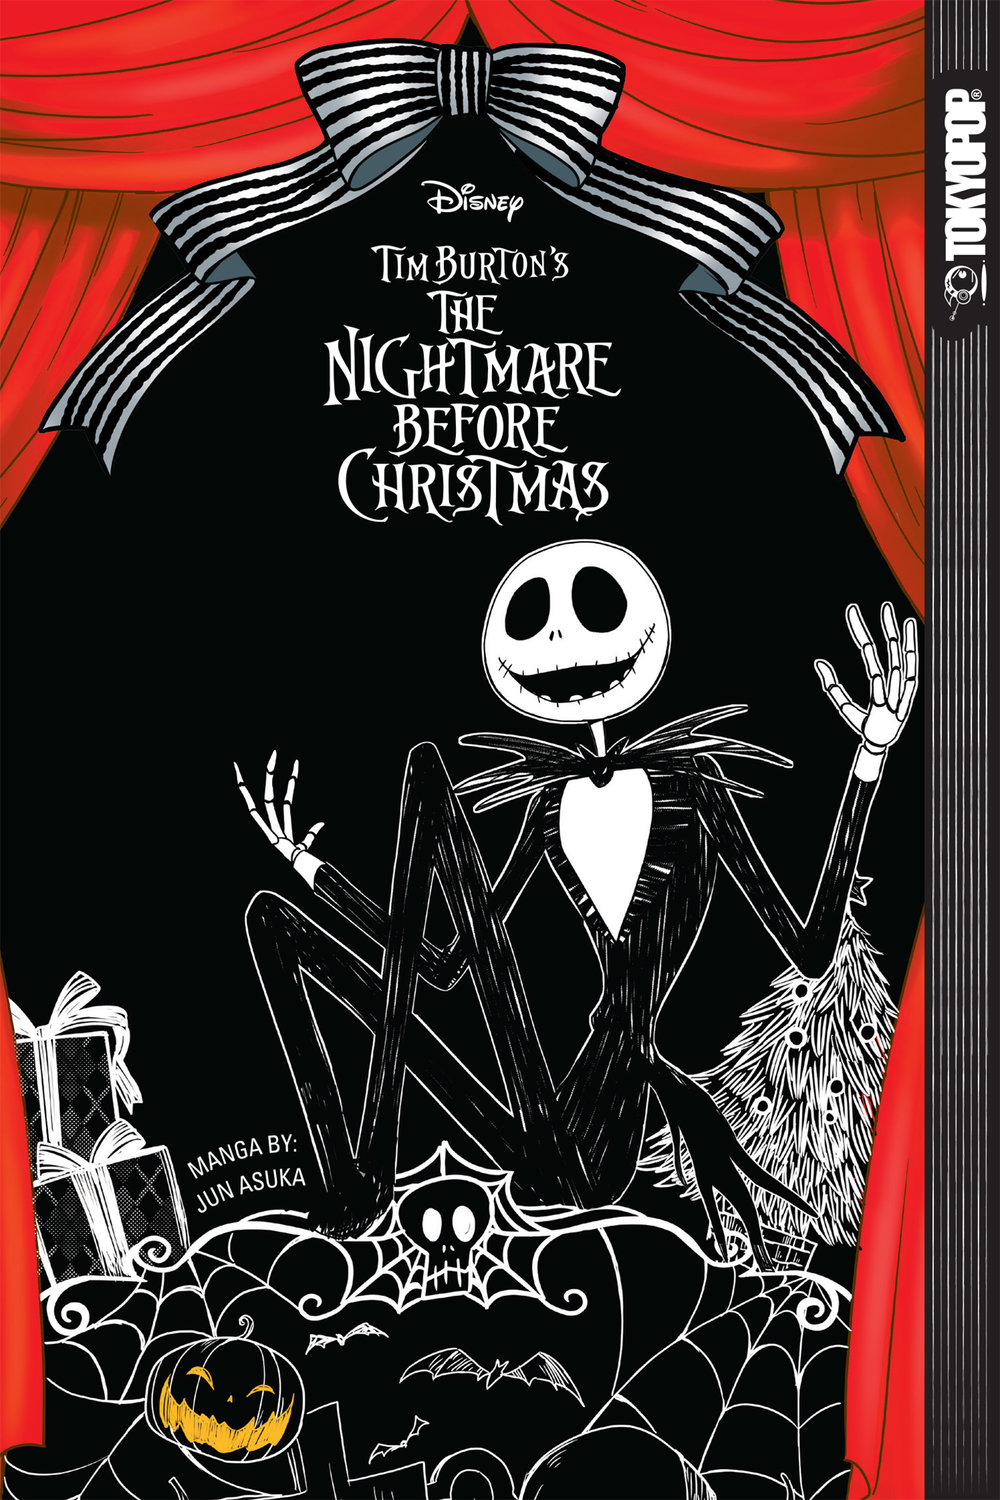 disney tim burtons the nightmare before christmas - Who Directed Nightmare Before Christmas